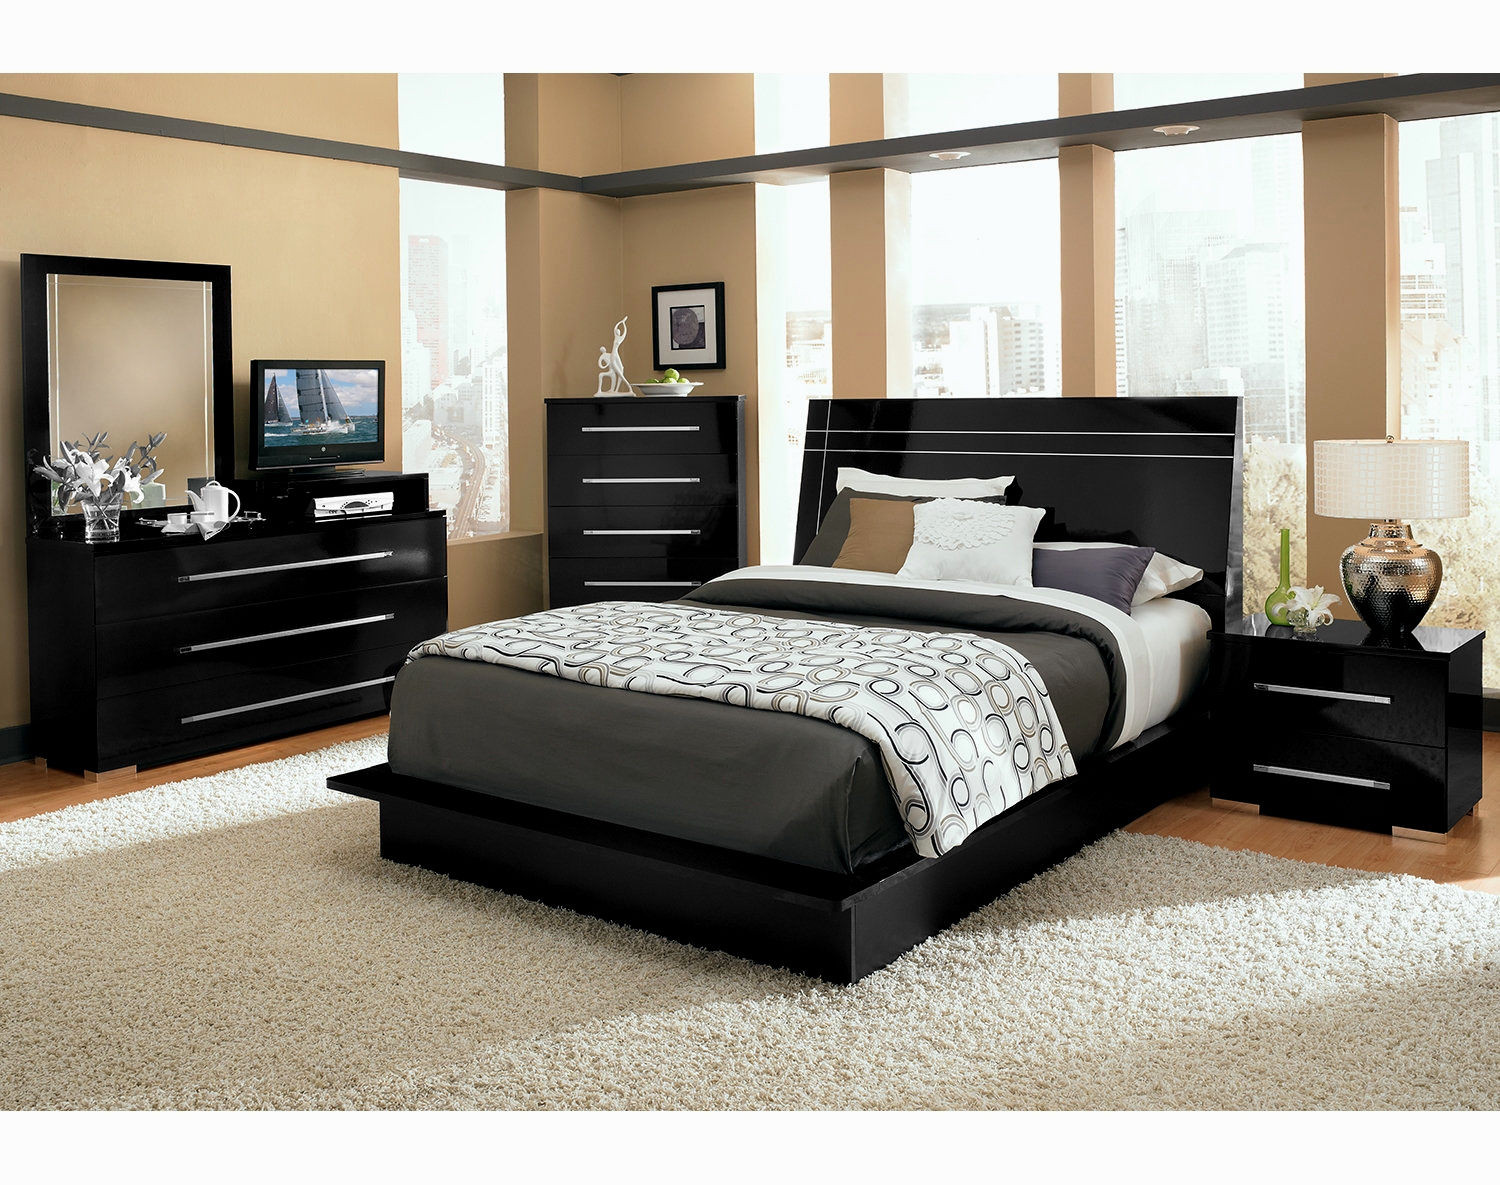 Best ideas about Cheap Queen Bedroom Sets . Save or Pin Stylish Cheap Queen Bedroom Sets Image Bedroom Now.